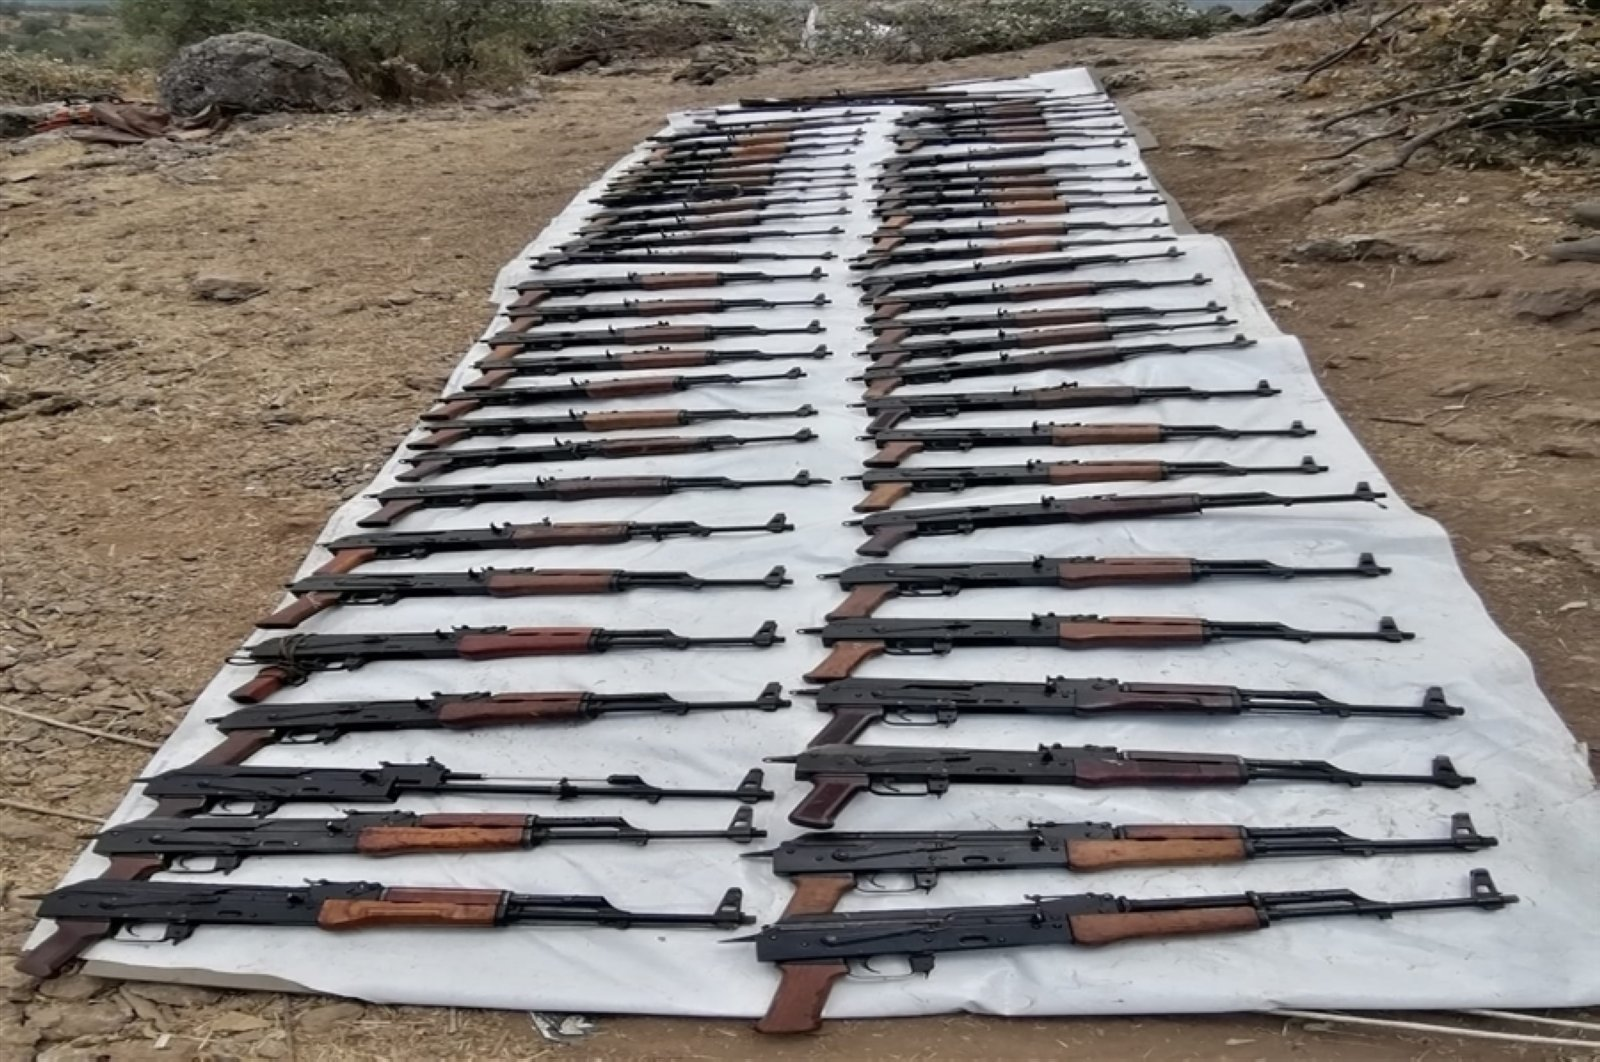 The Turkish military seized a huge cache of weapons and ammunition during an anti-terror operation in northern Iraq, July 25, 2020. (AA Photo)